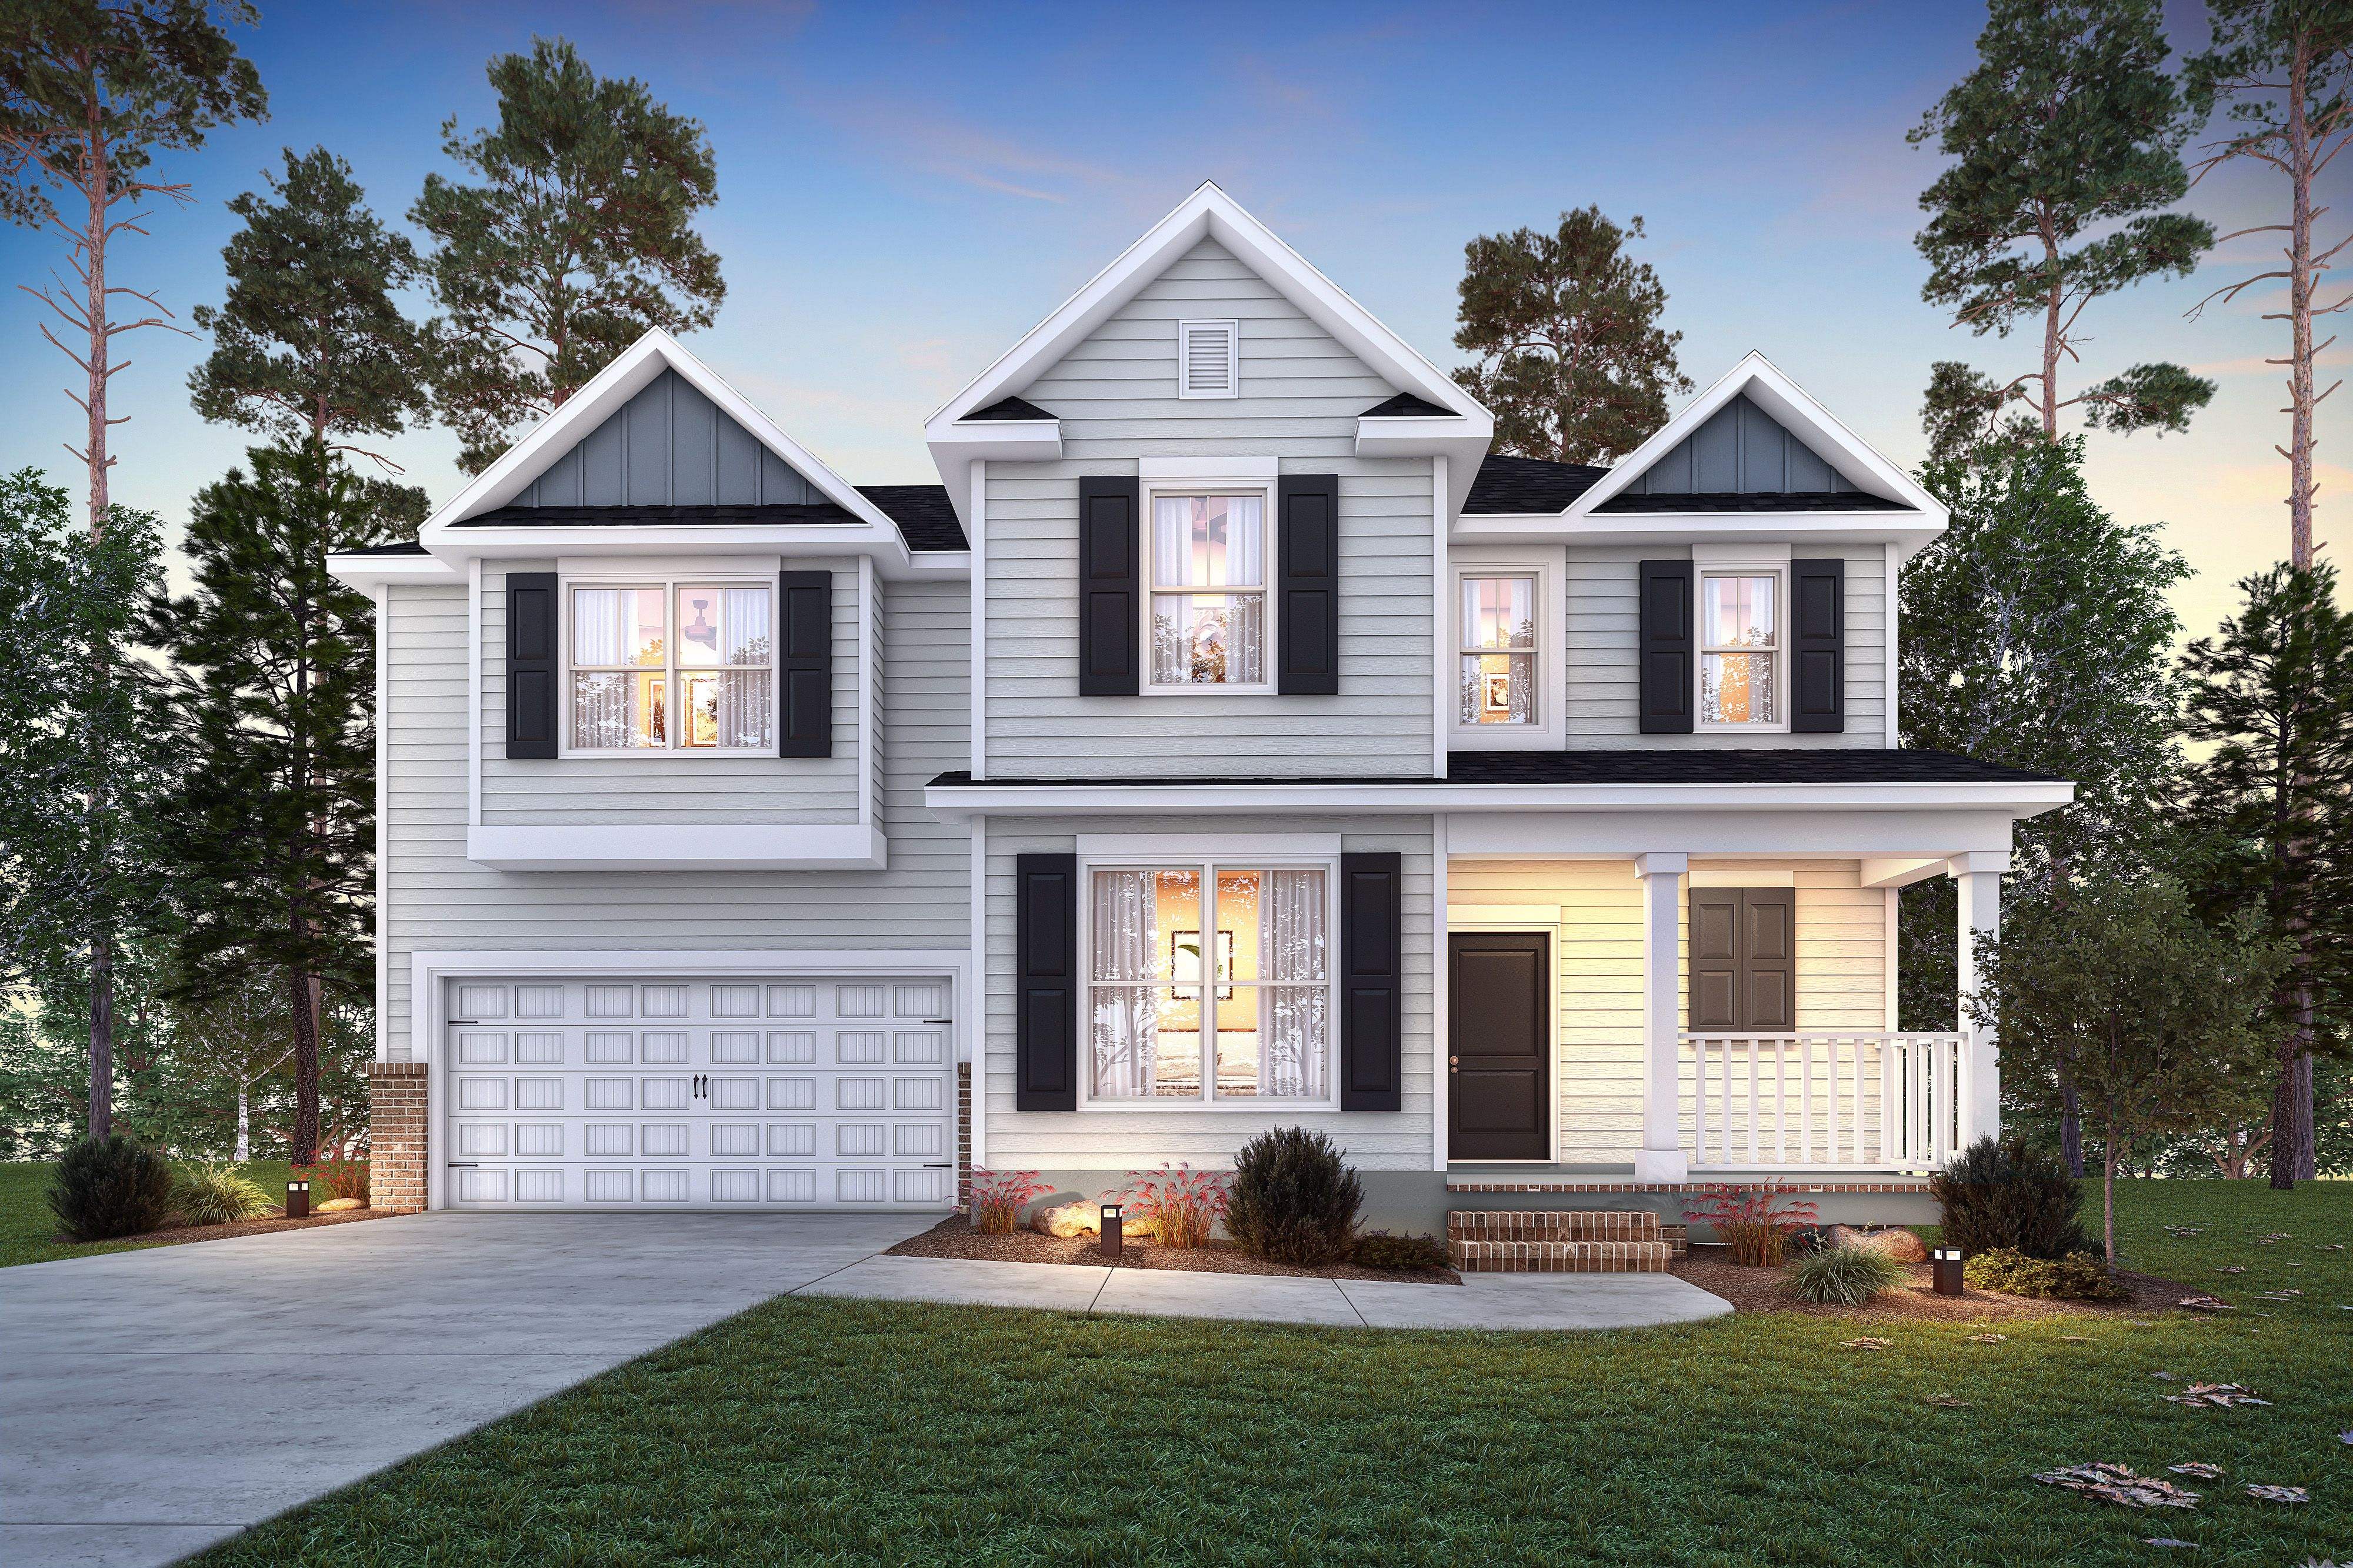 'Bellehaven' by Executive Construction Homes in Columbia